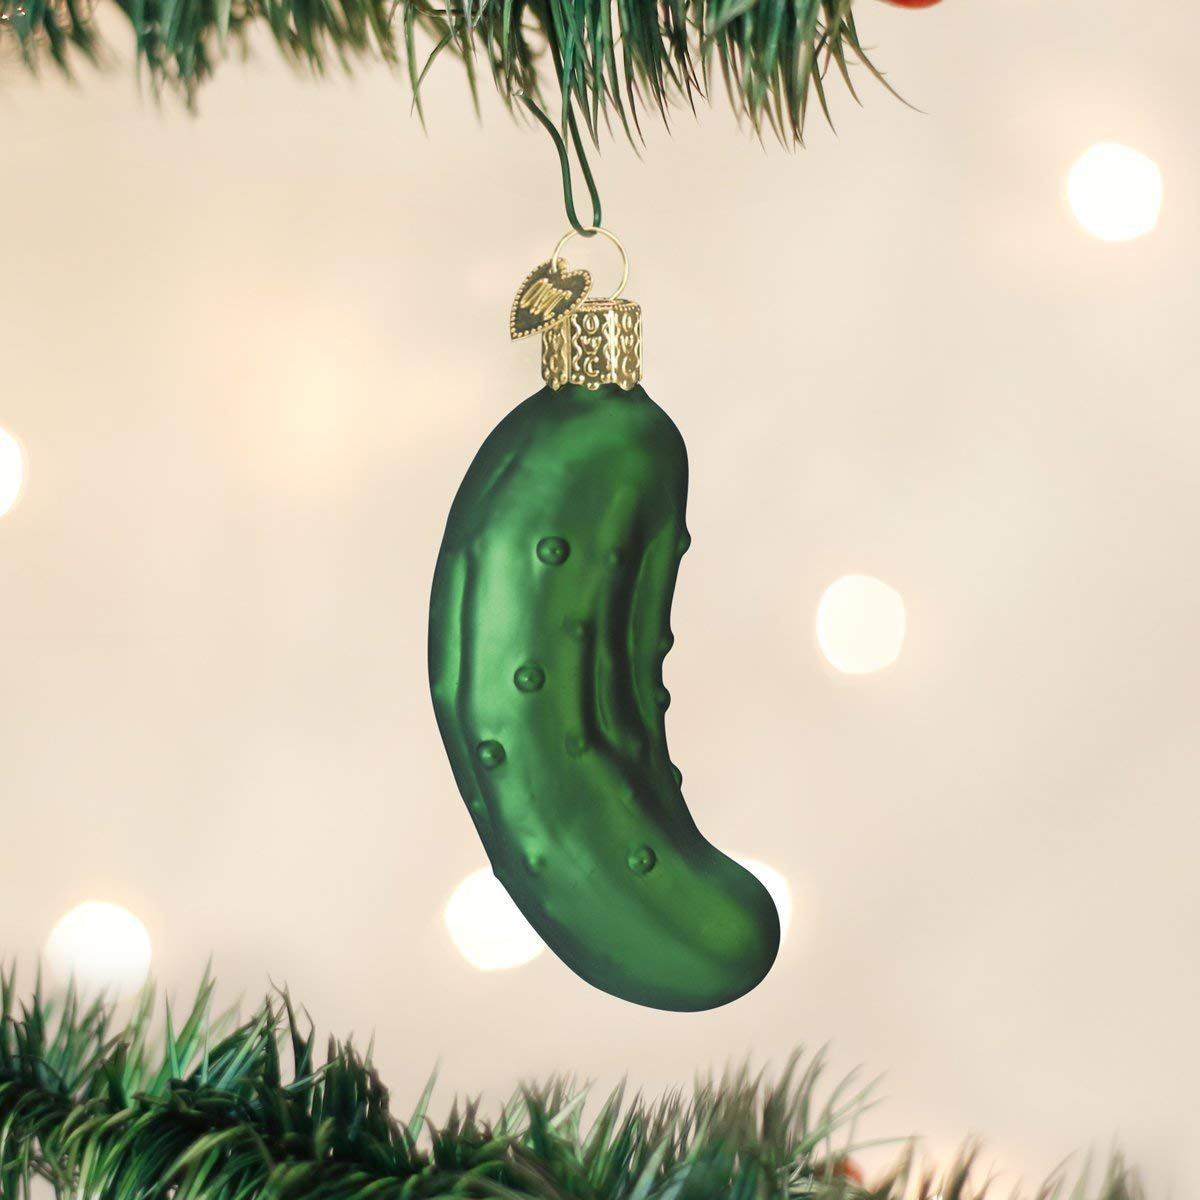 Old World Christmas Ornaments: Pickle Glass Blown Ornaments for Christmas Tree